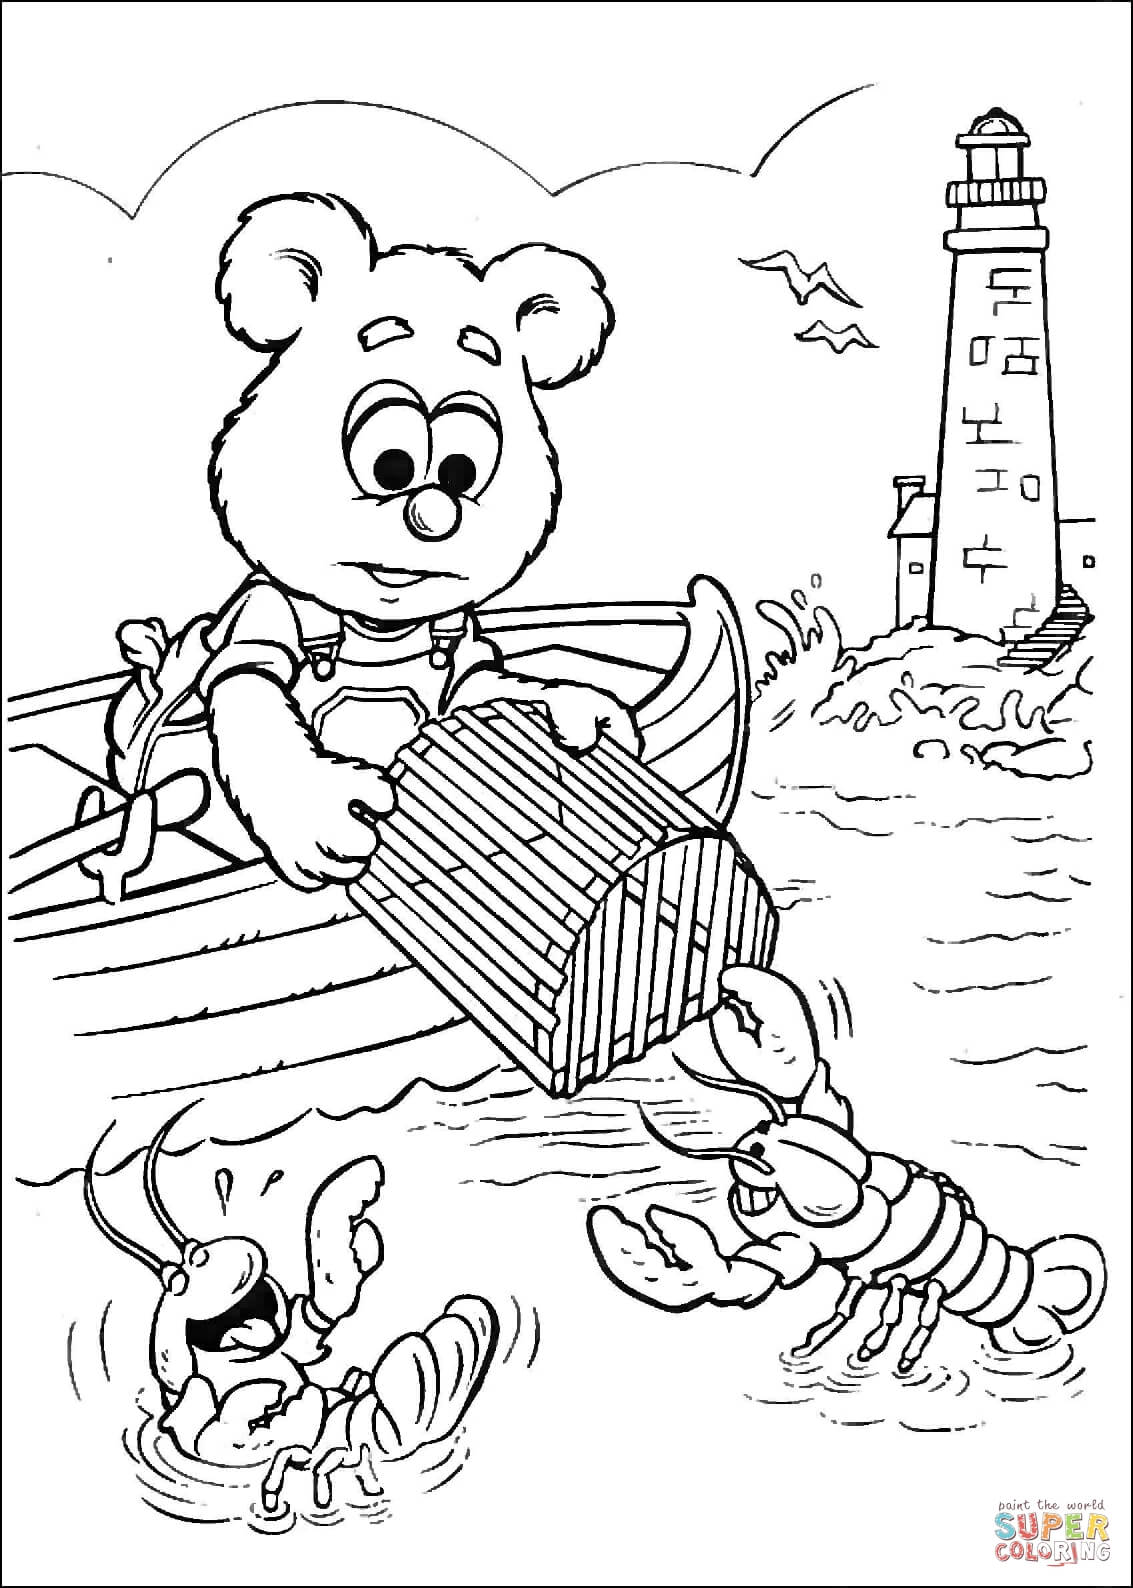 Baby Fozzie Is Fishing For Lobsters Coloring Page